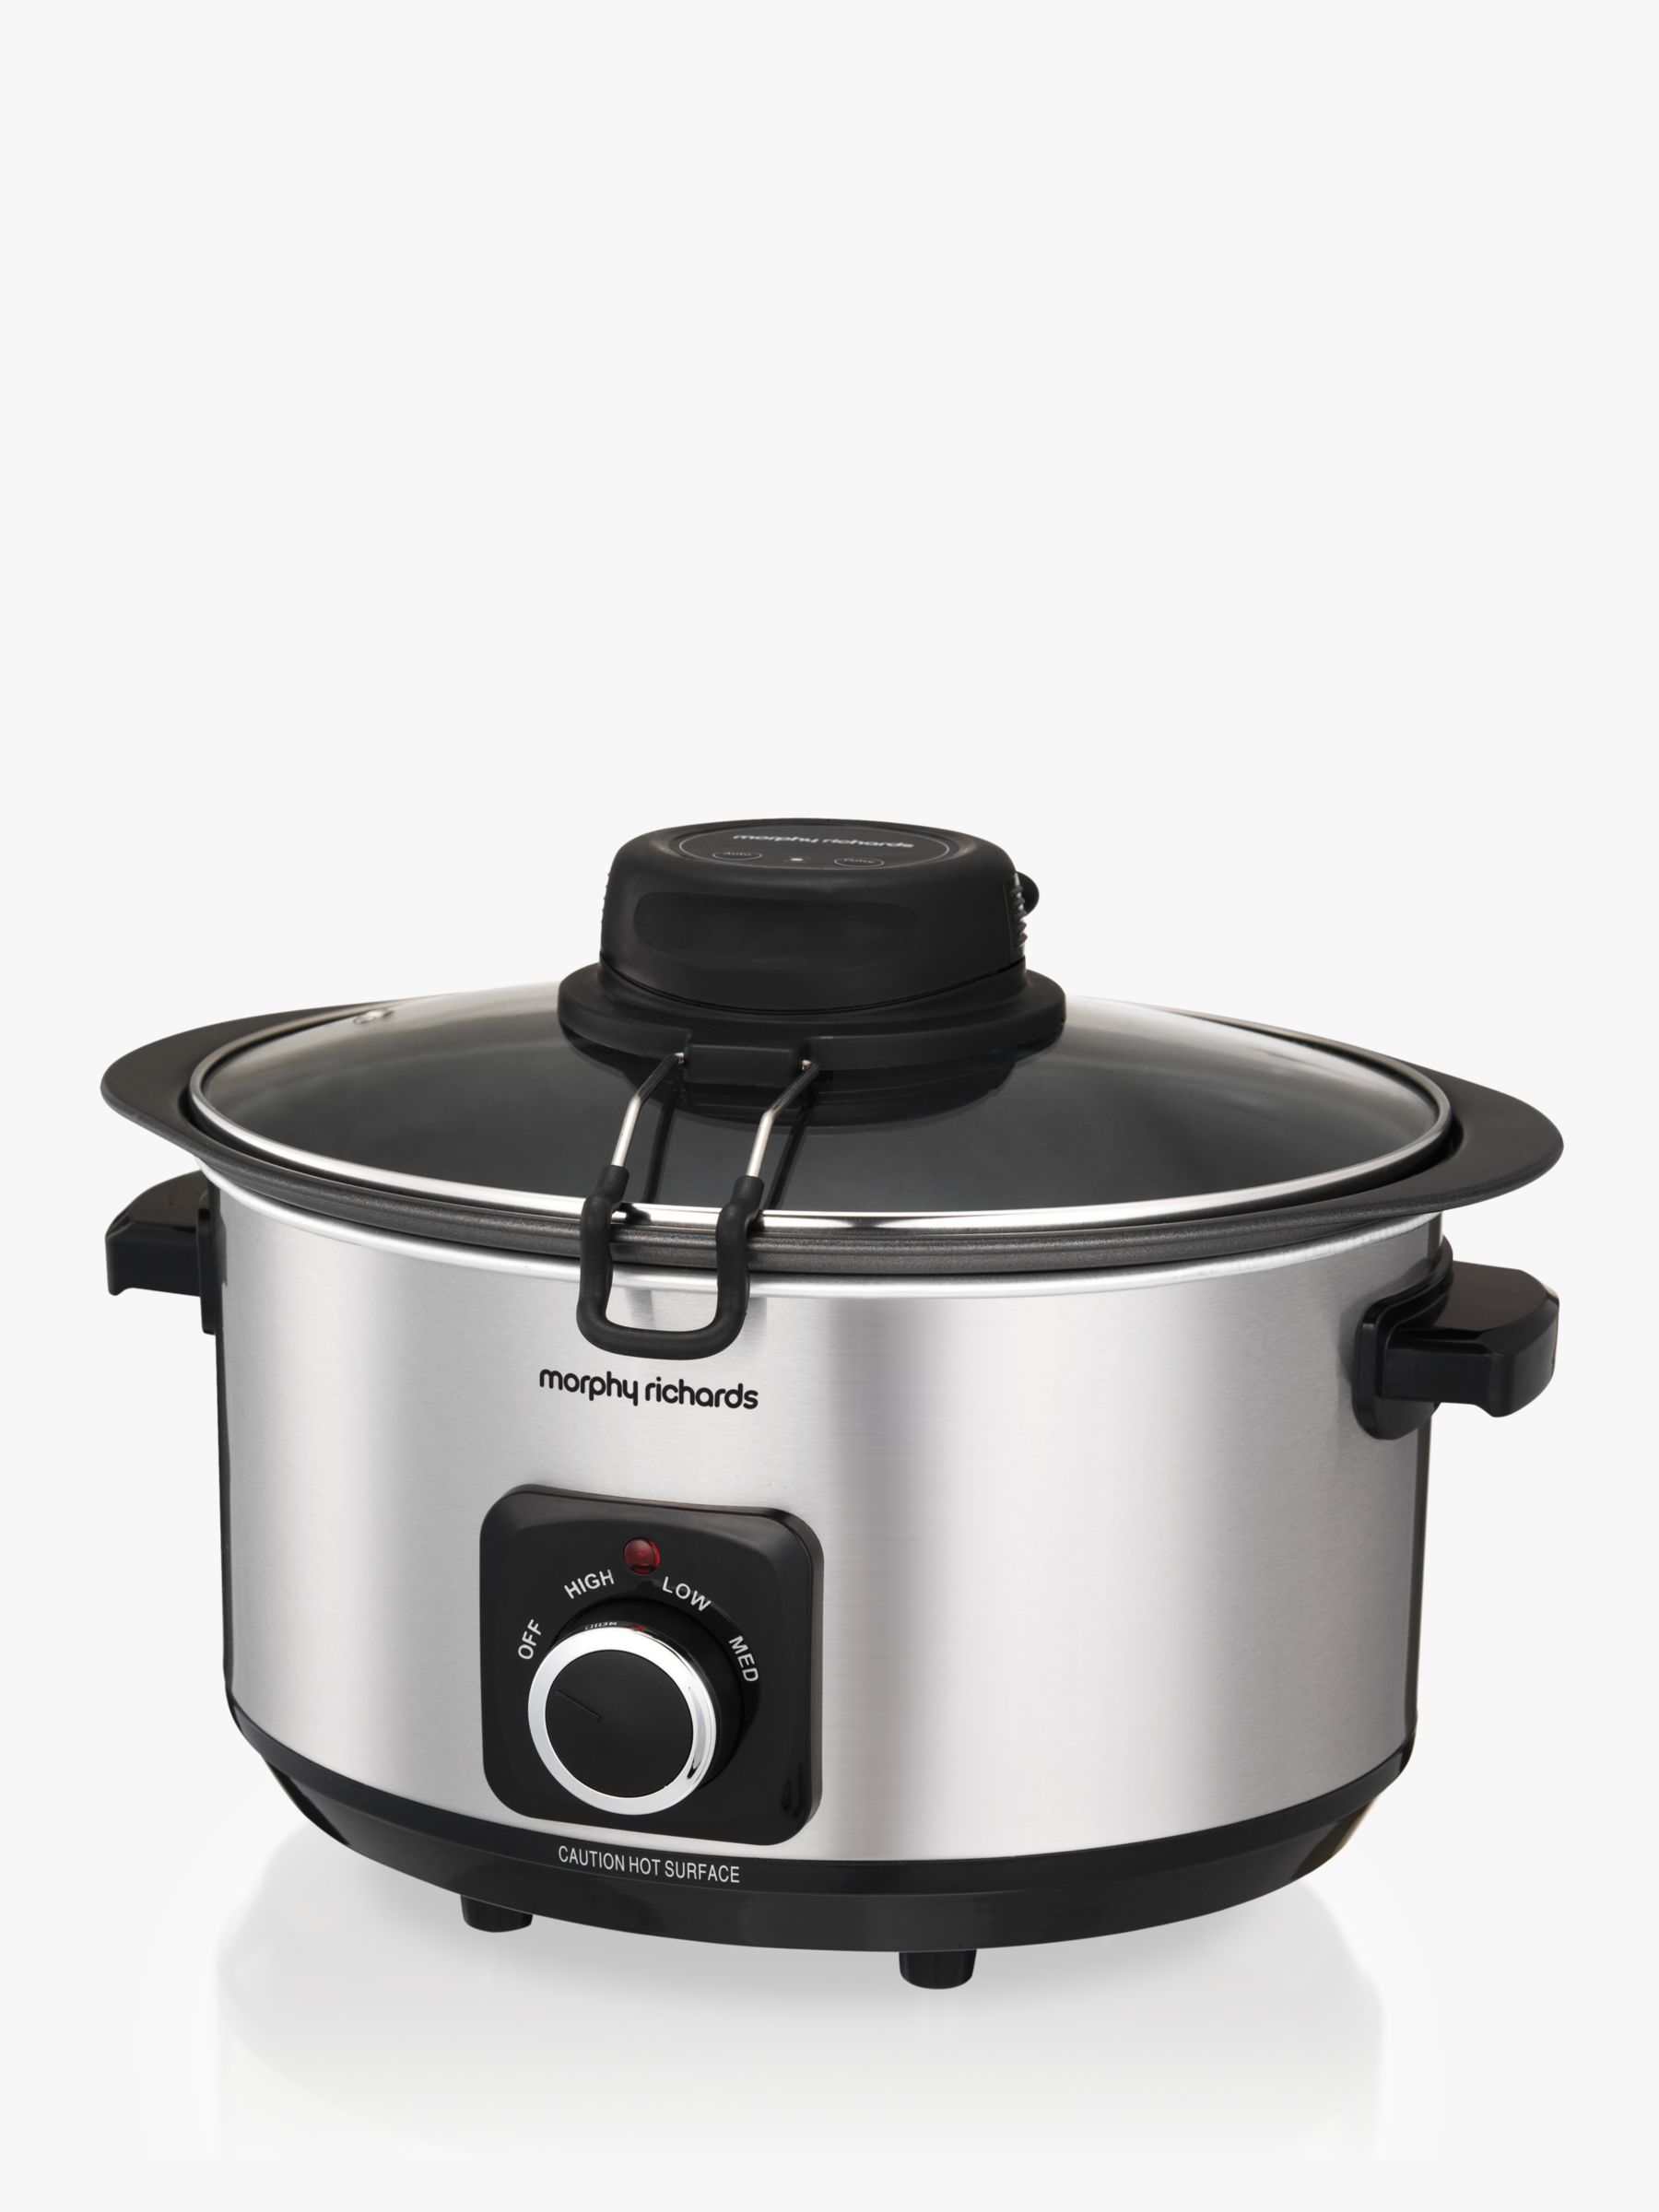 Morphy Richards Morphy Richards 461010 Sear, Stew and Stir Slow Cooker, 6.5L